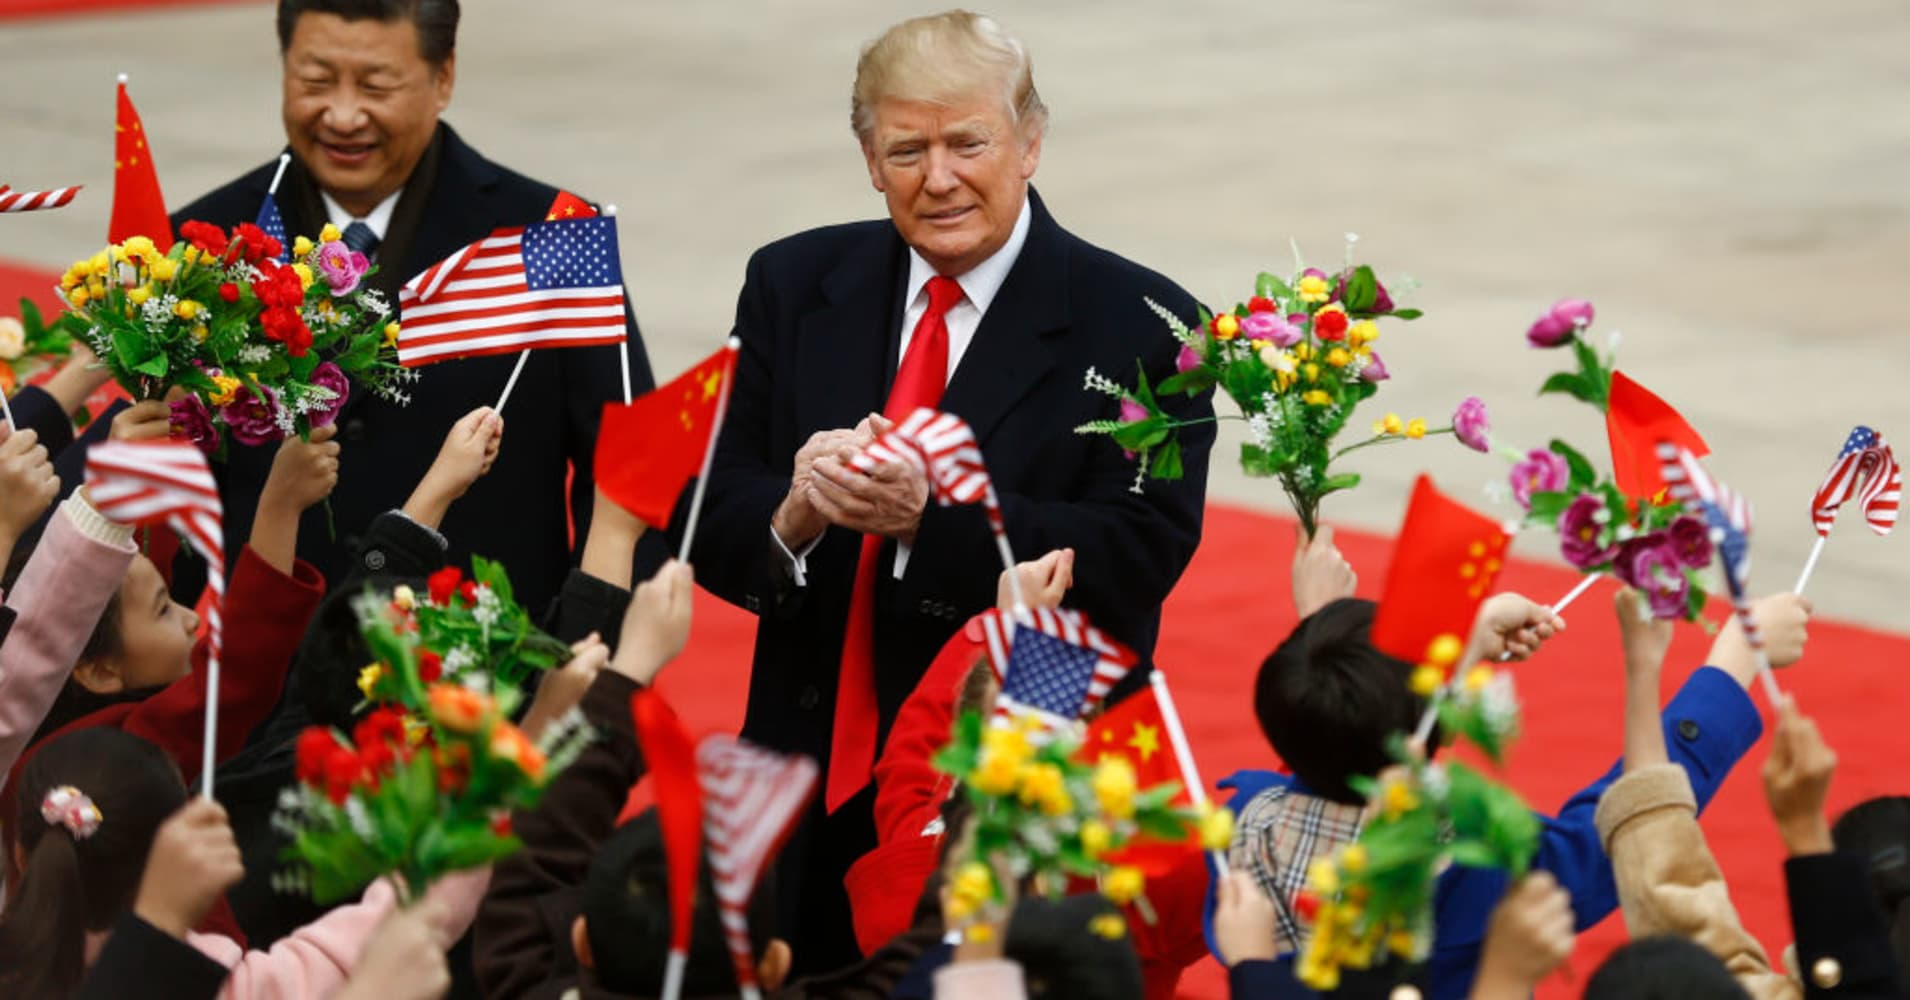 Trump: 'I give China great credit' for taking advantage of the US — but that must change